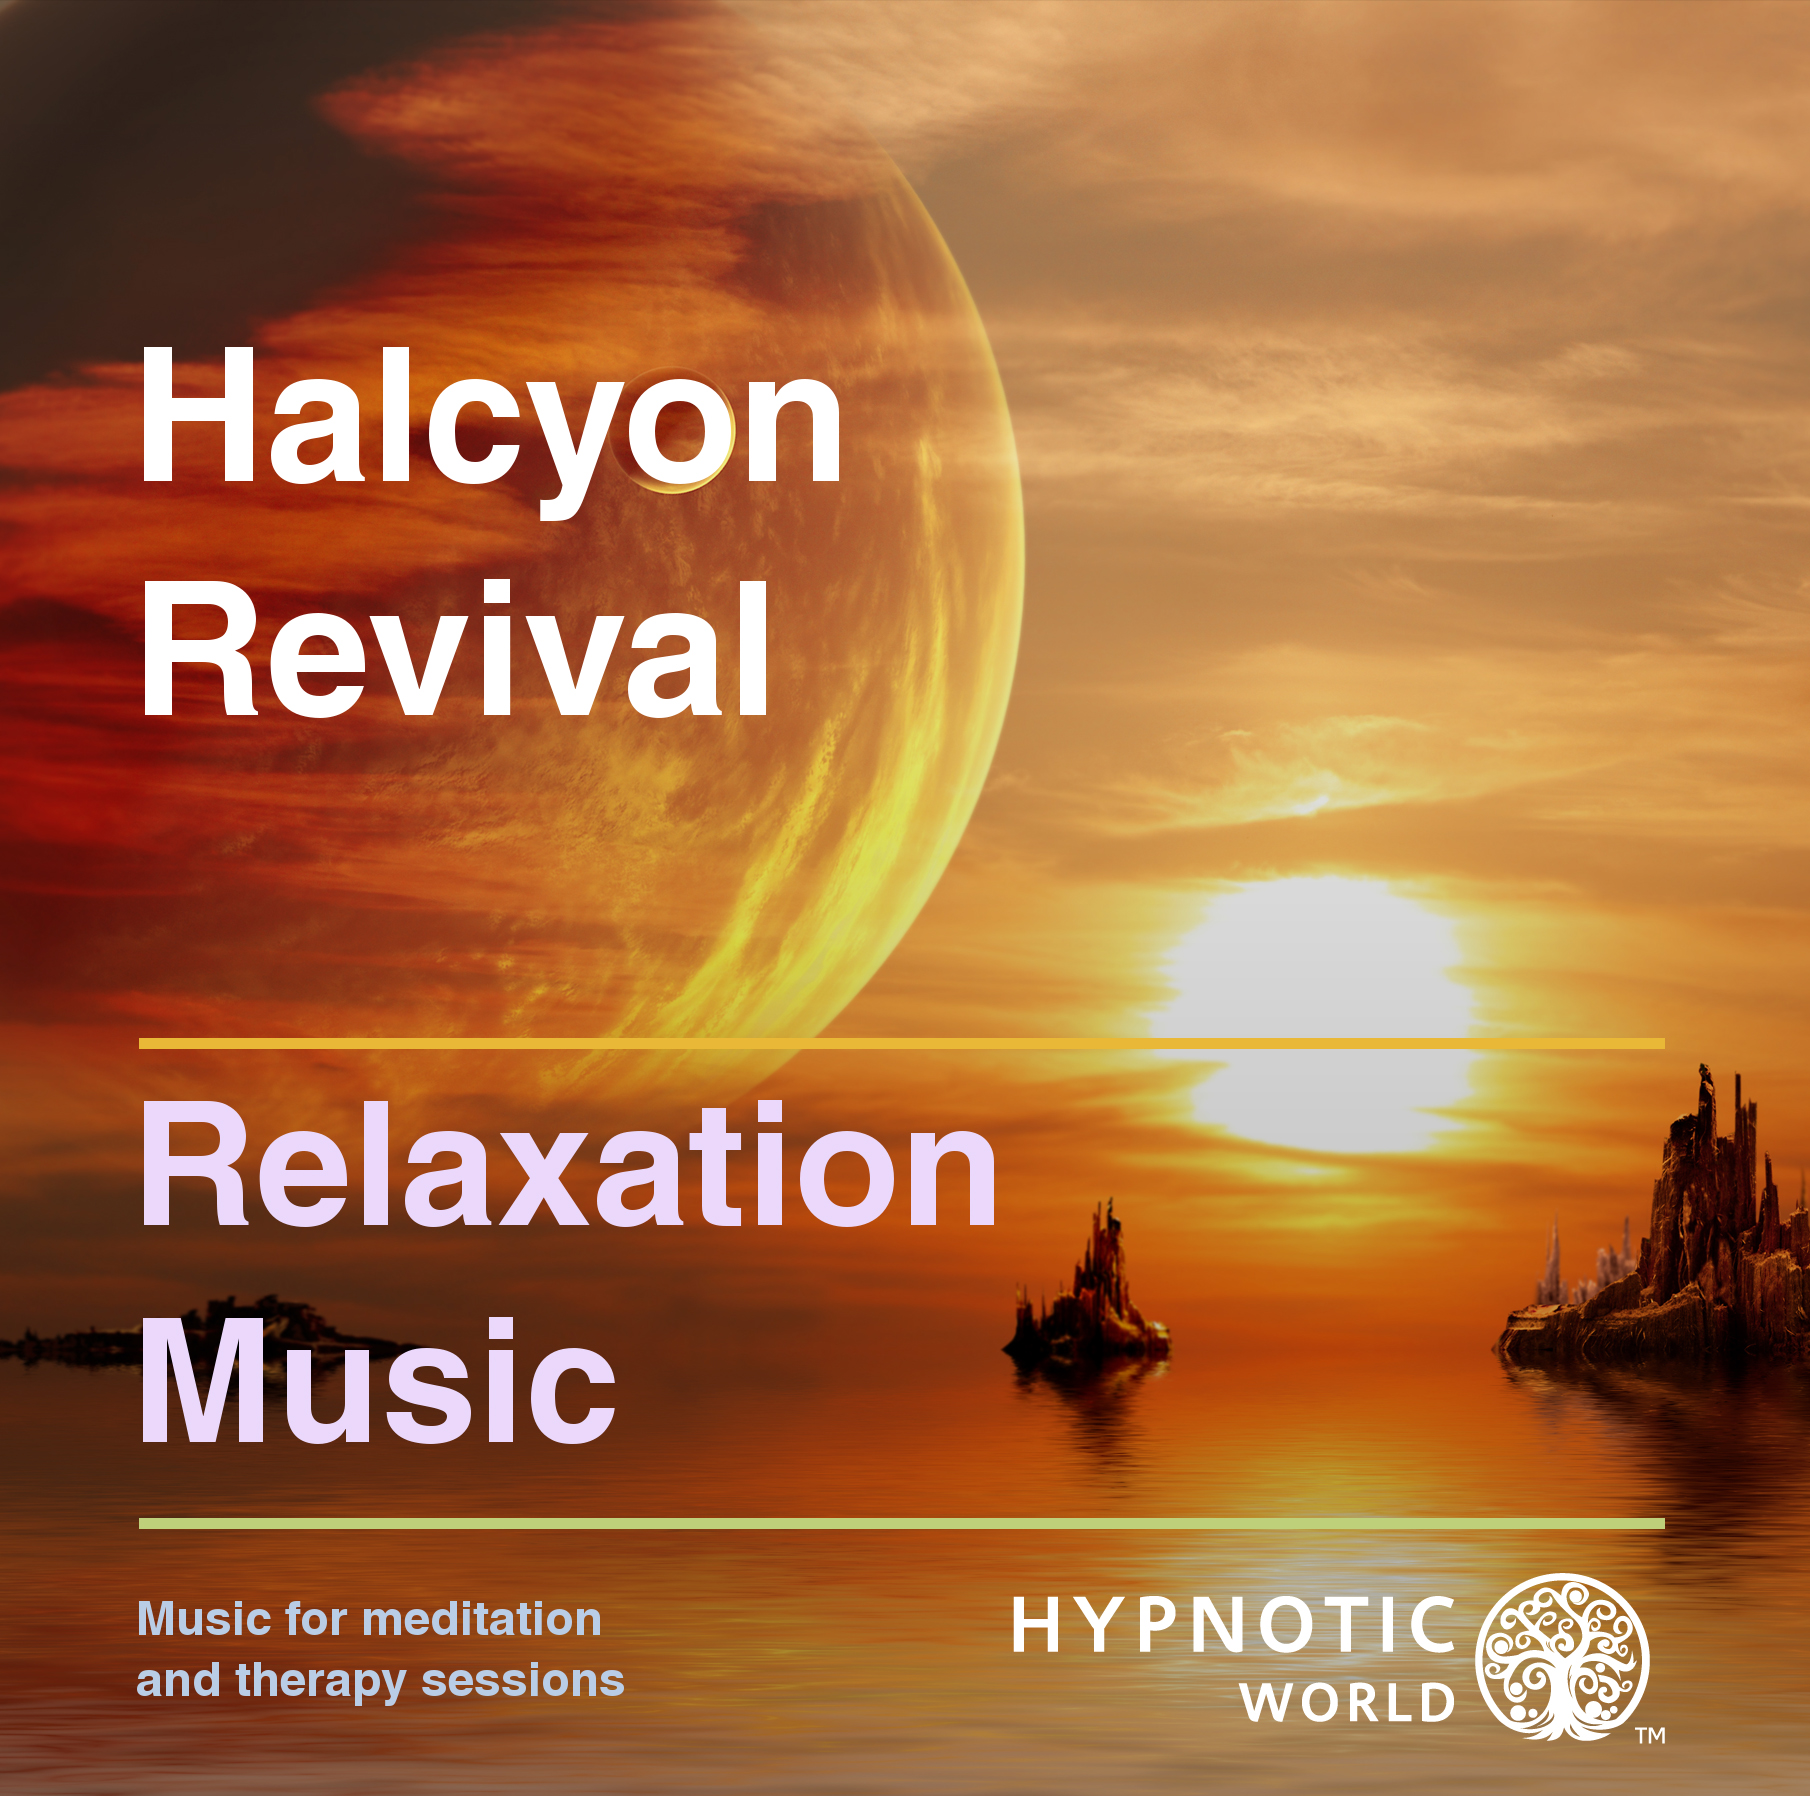 Halcyon Revival Relaxation Music CD